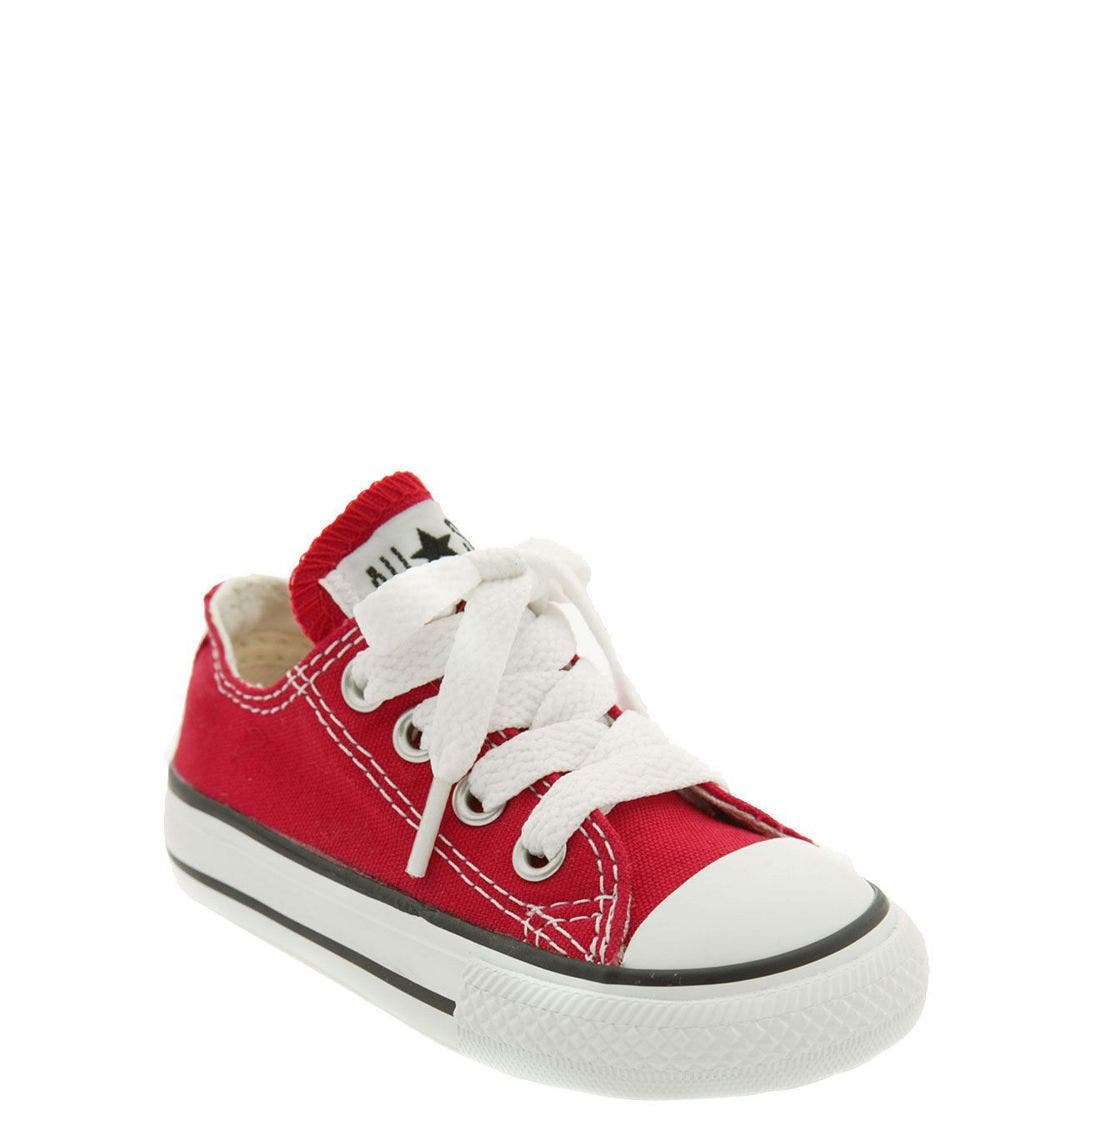 Chuck Taylor<sup>®</sup> Low Top Sneaker,                             Main thumbnail 1, color,                             Red